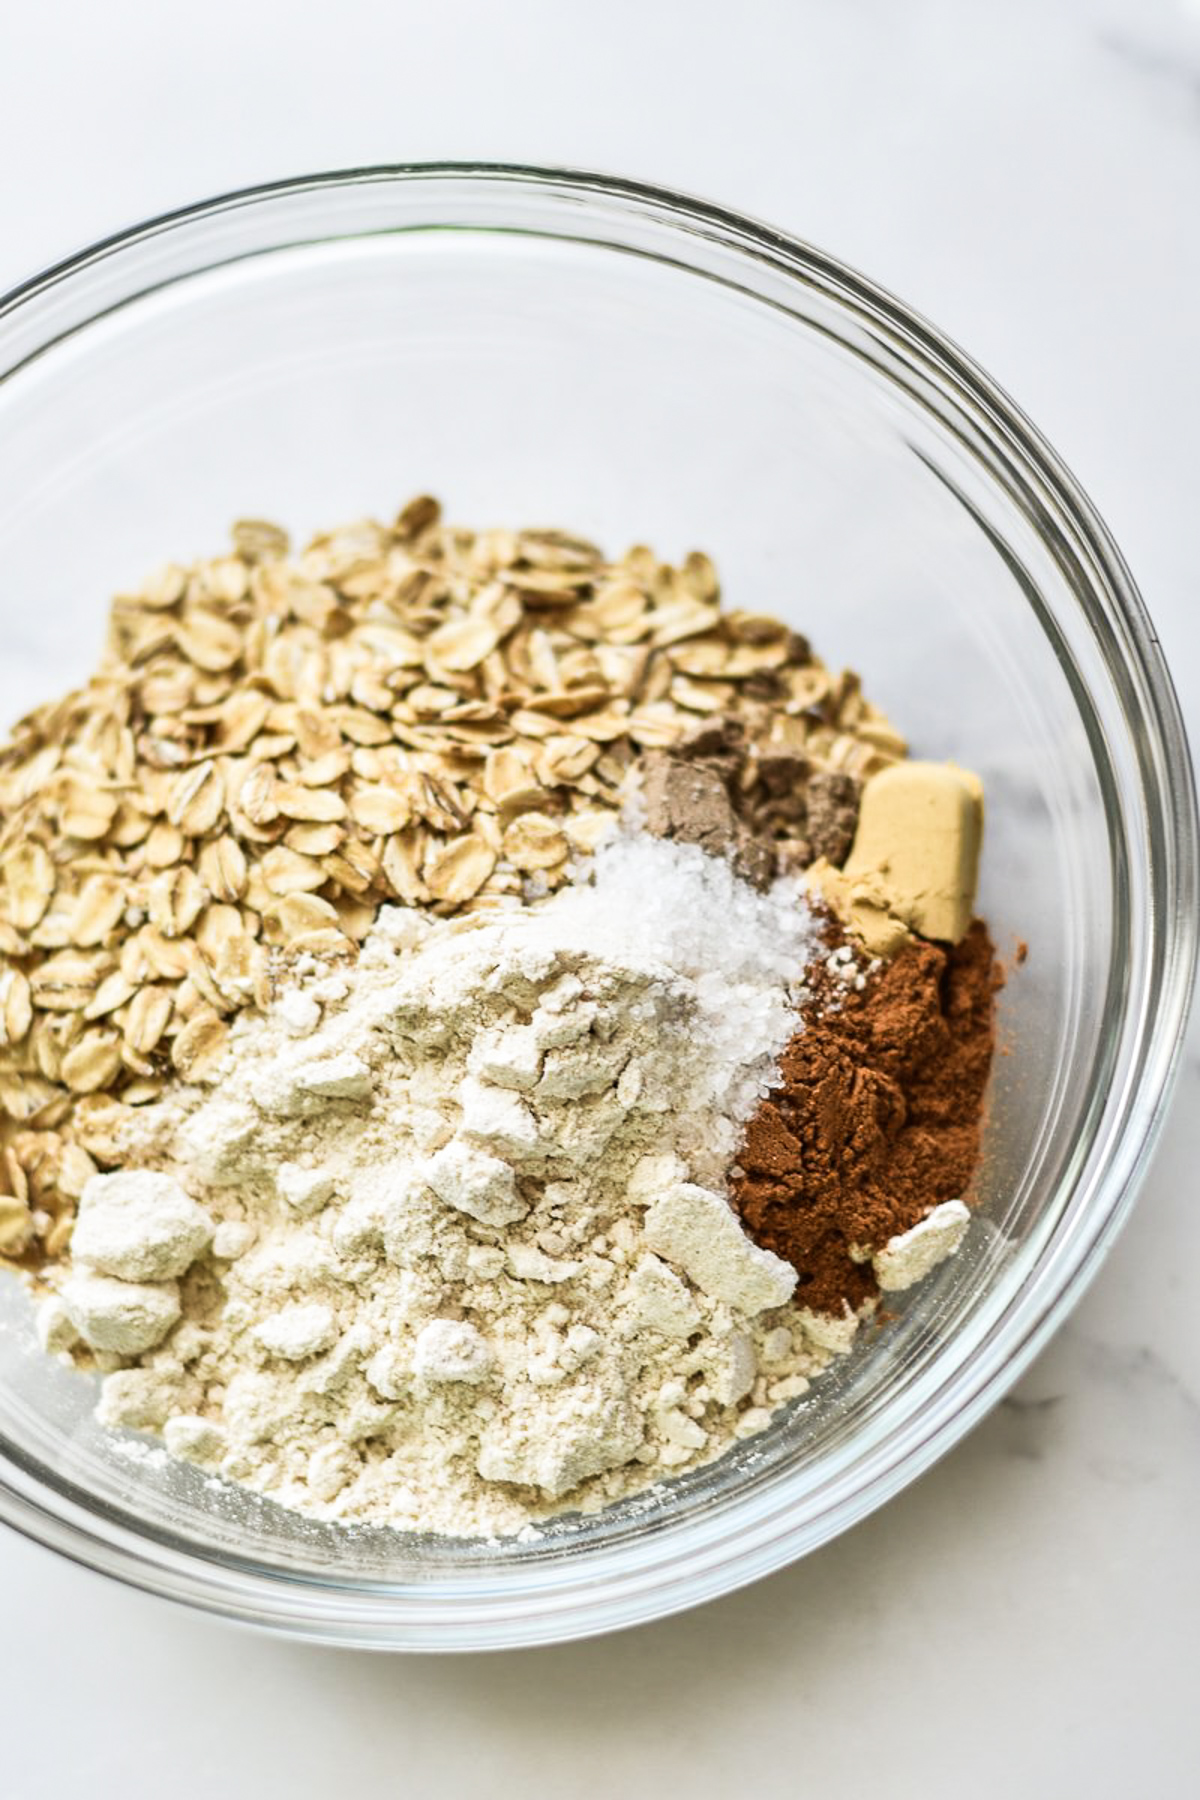 dry ingredients for a gluten-free peach crisp in a bowl